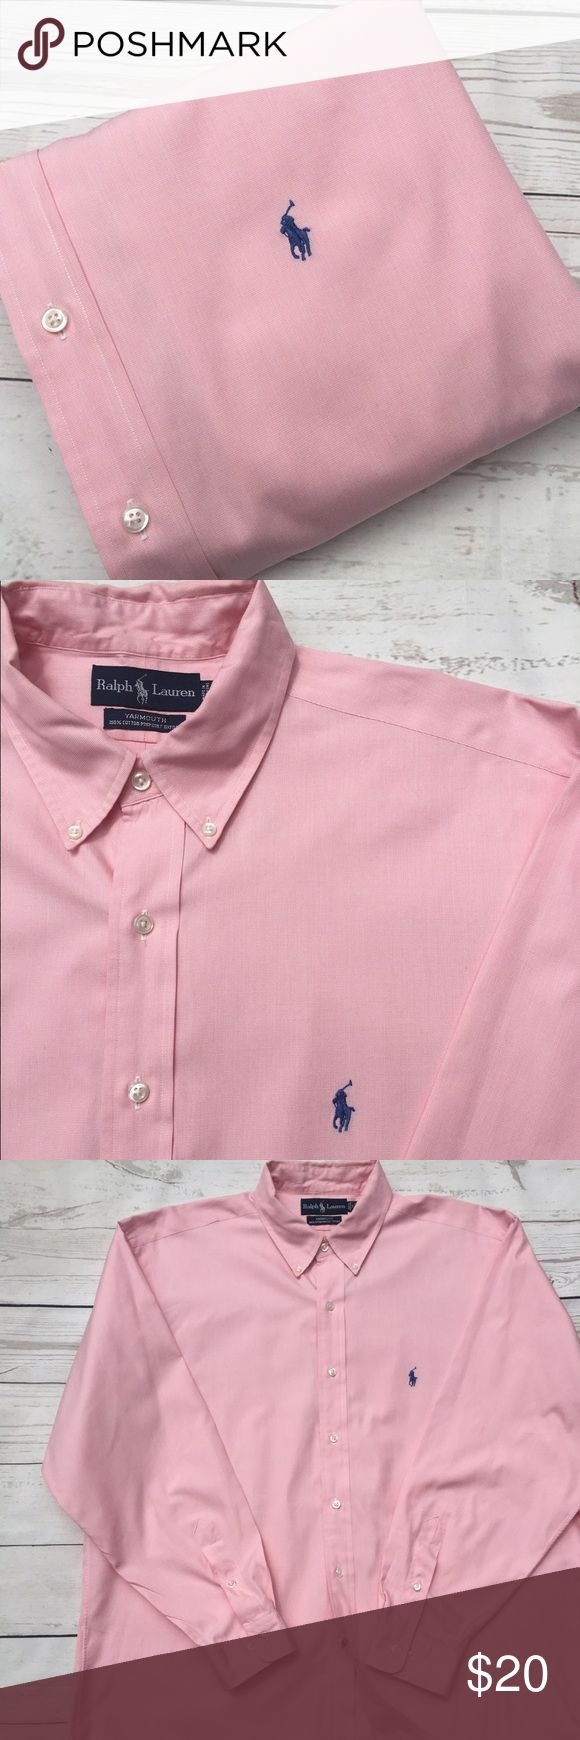 "☀️SALE☀️1/$20•2/$34•3/$50•POLO•Ralph•Lauren•Shirt• ☀️SALE☀️1/$20•2/$34•3/$50•POLO•Ralph•Lauren•men's  long sleeve button front 100% cotton pinpoint oxford shirt•17 34/35 Yarmouth per tag•Signature pony at chest•EUC• I see no flaws• this is an amazing deal on an amazing shirt that won't last long!         Chest: 29"" Length: 36"" Sleeve: 36"" Shoulder: 22"" Polo by Ralph Lauren Shirts Casual Button Down Shirts"